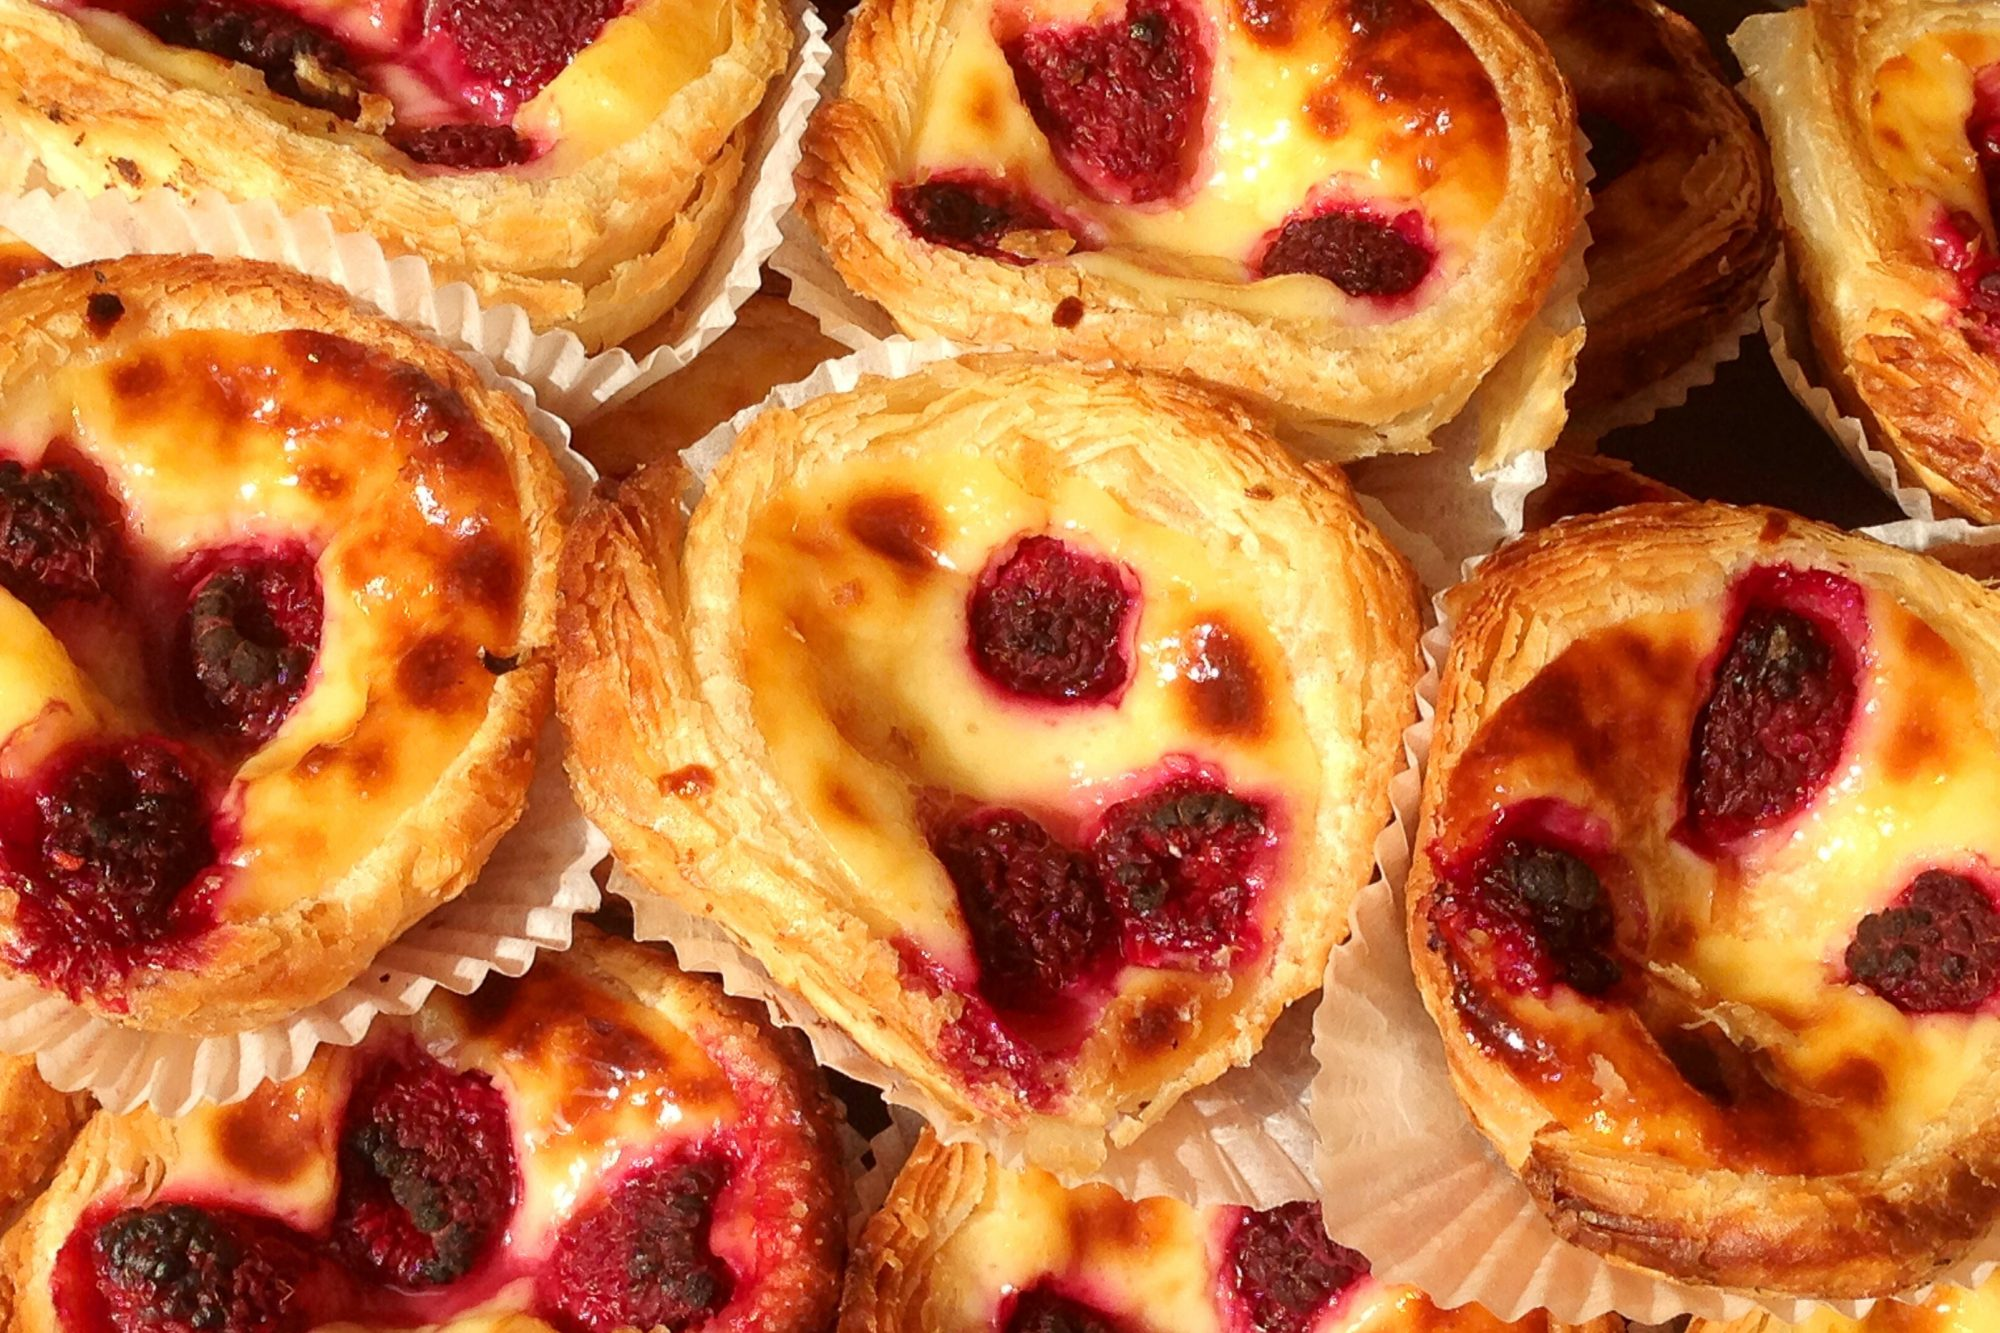 This Portuguese Pastry Is About to Be Everywhere